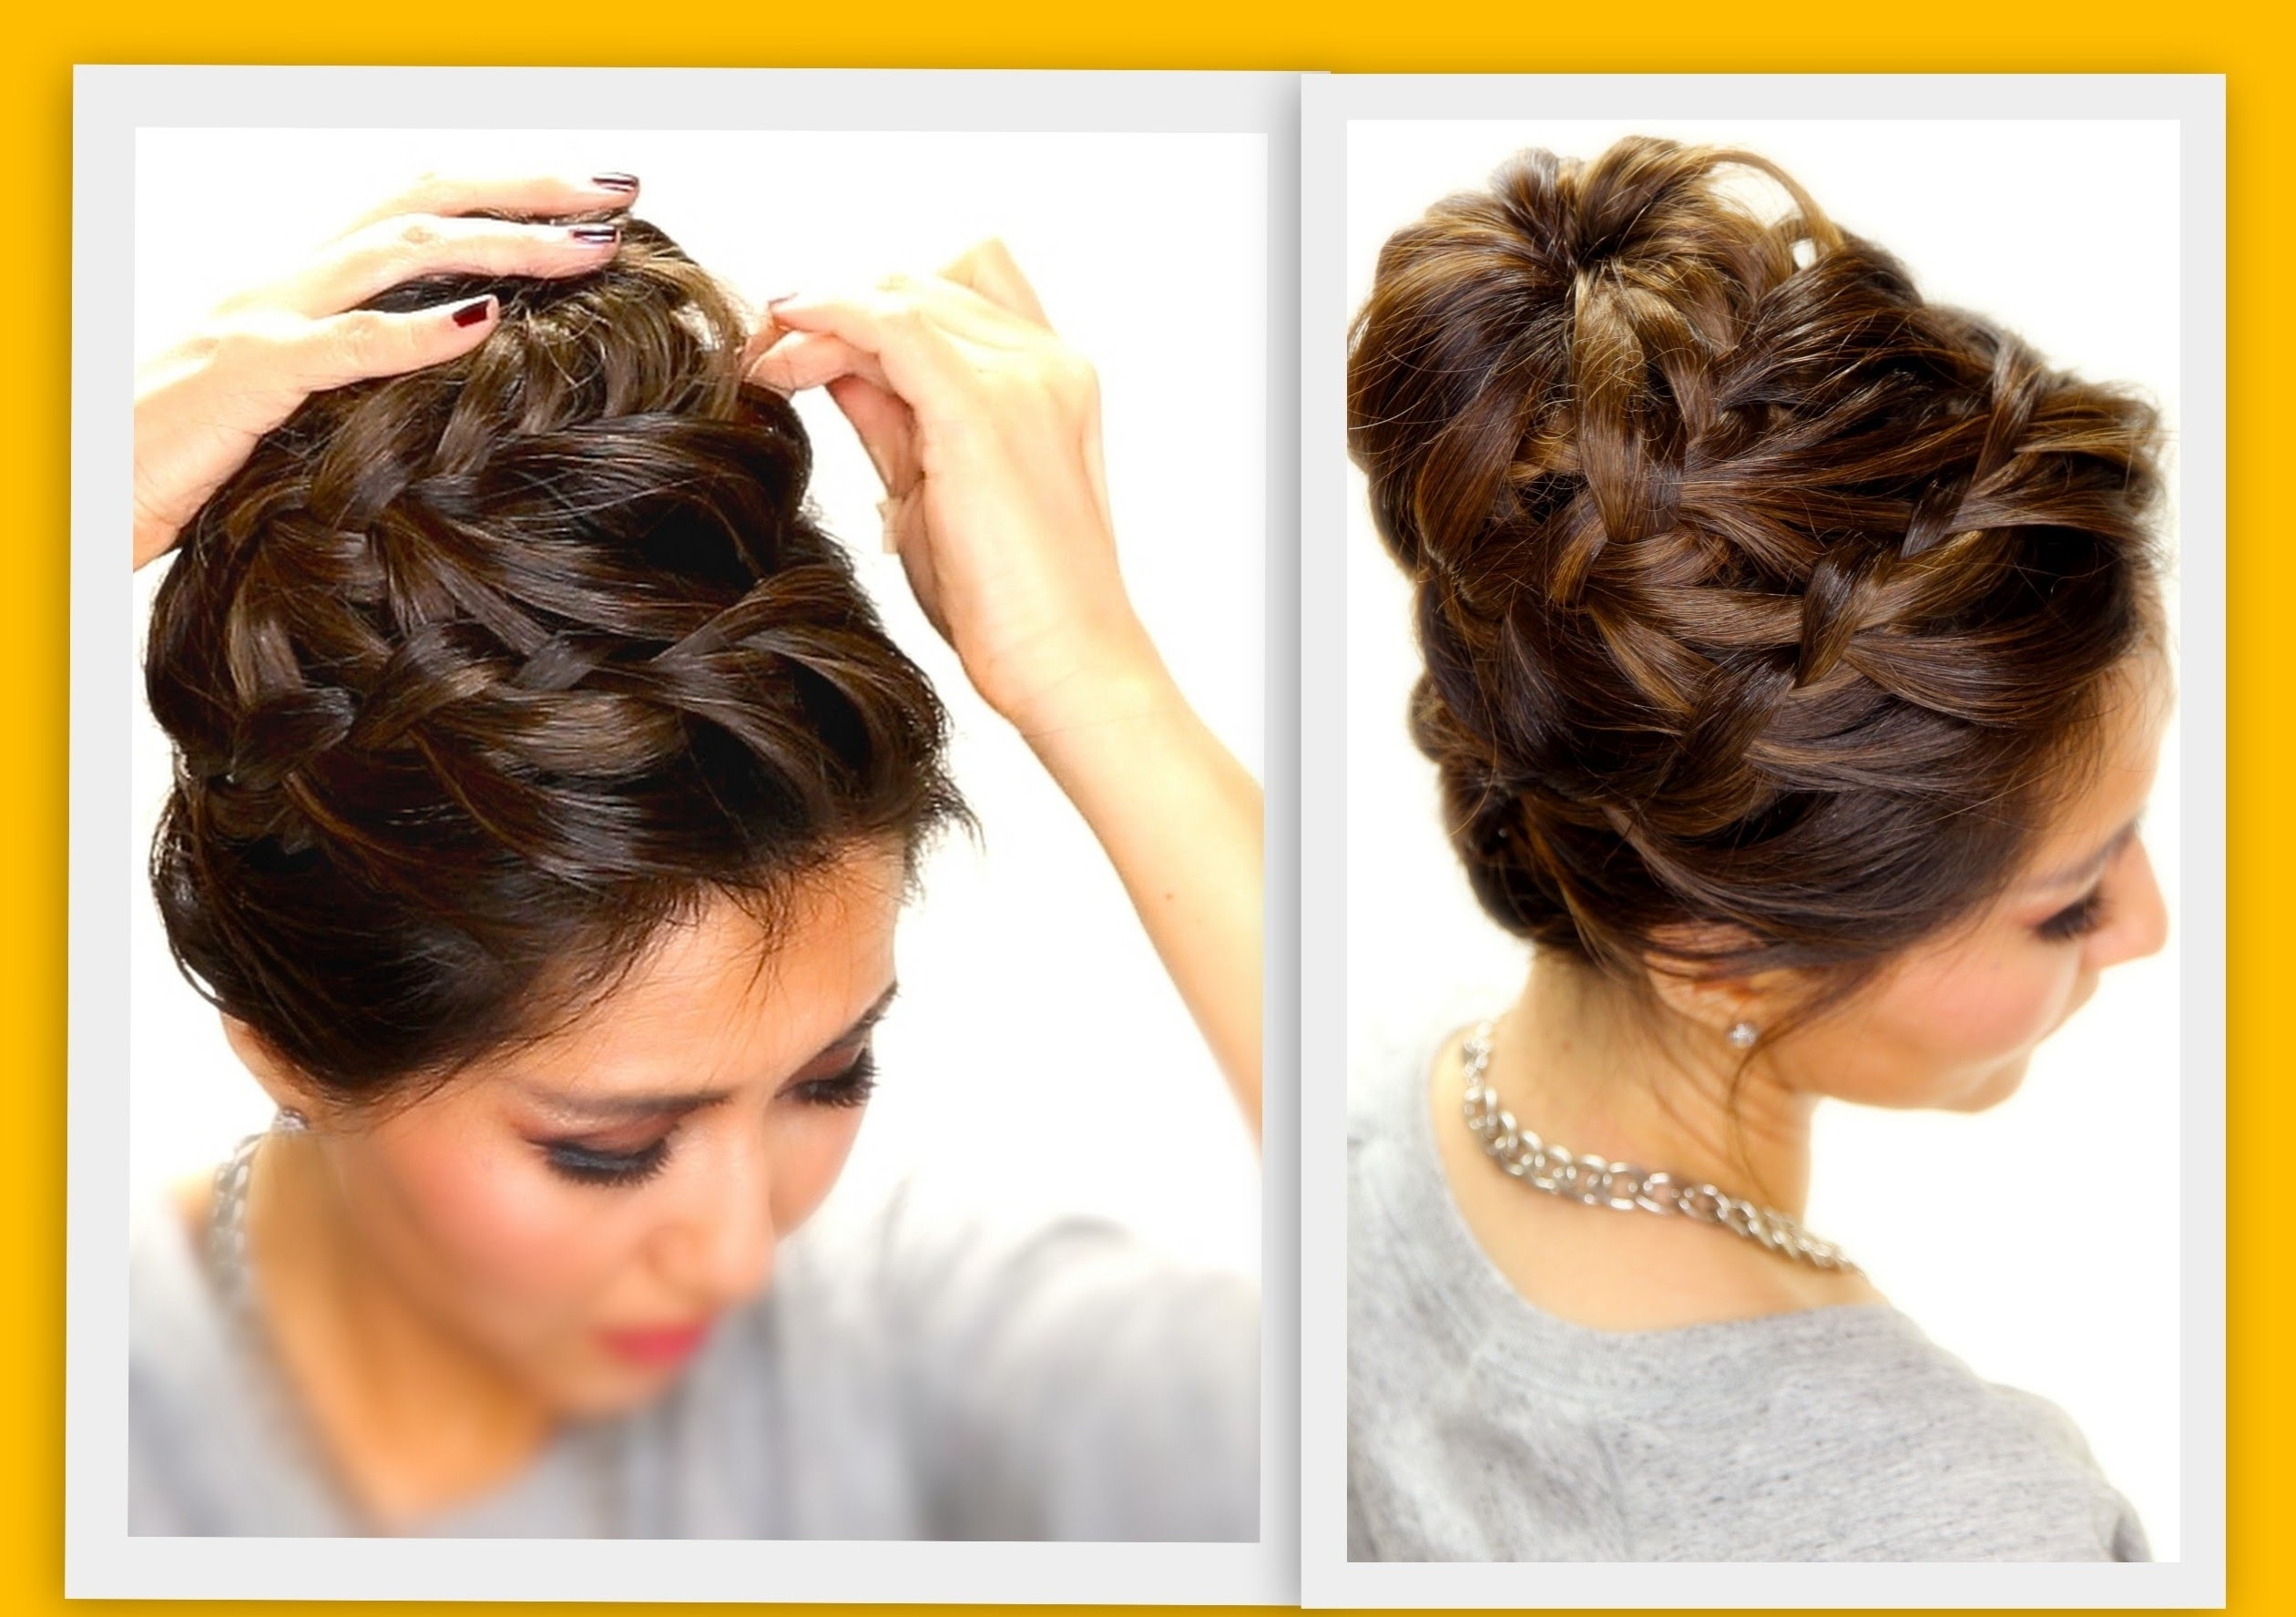 Latest Braided Updo Hairstyles For Weddings With ☆ Epic Braid Bun (View 15 of 15)